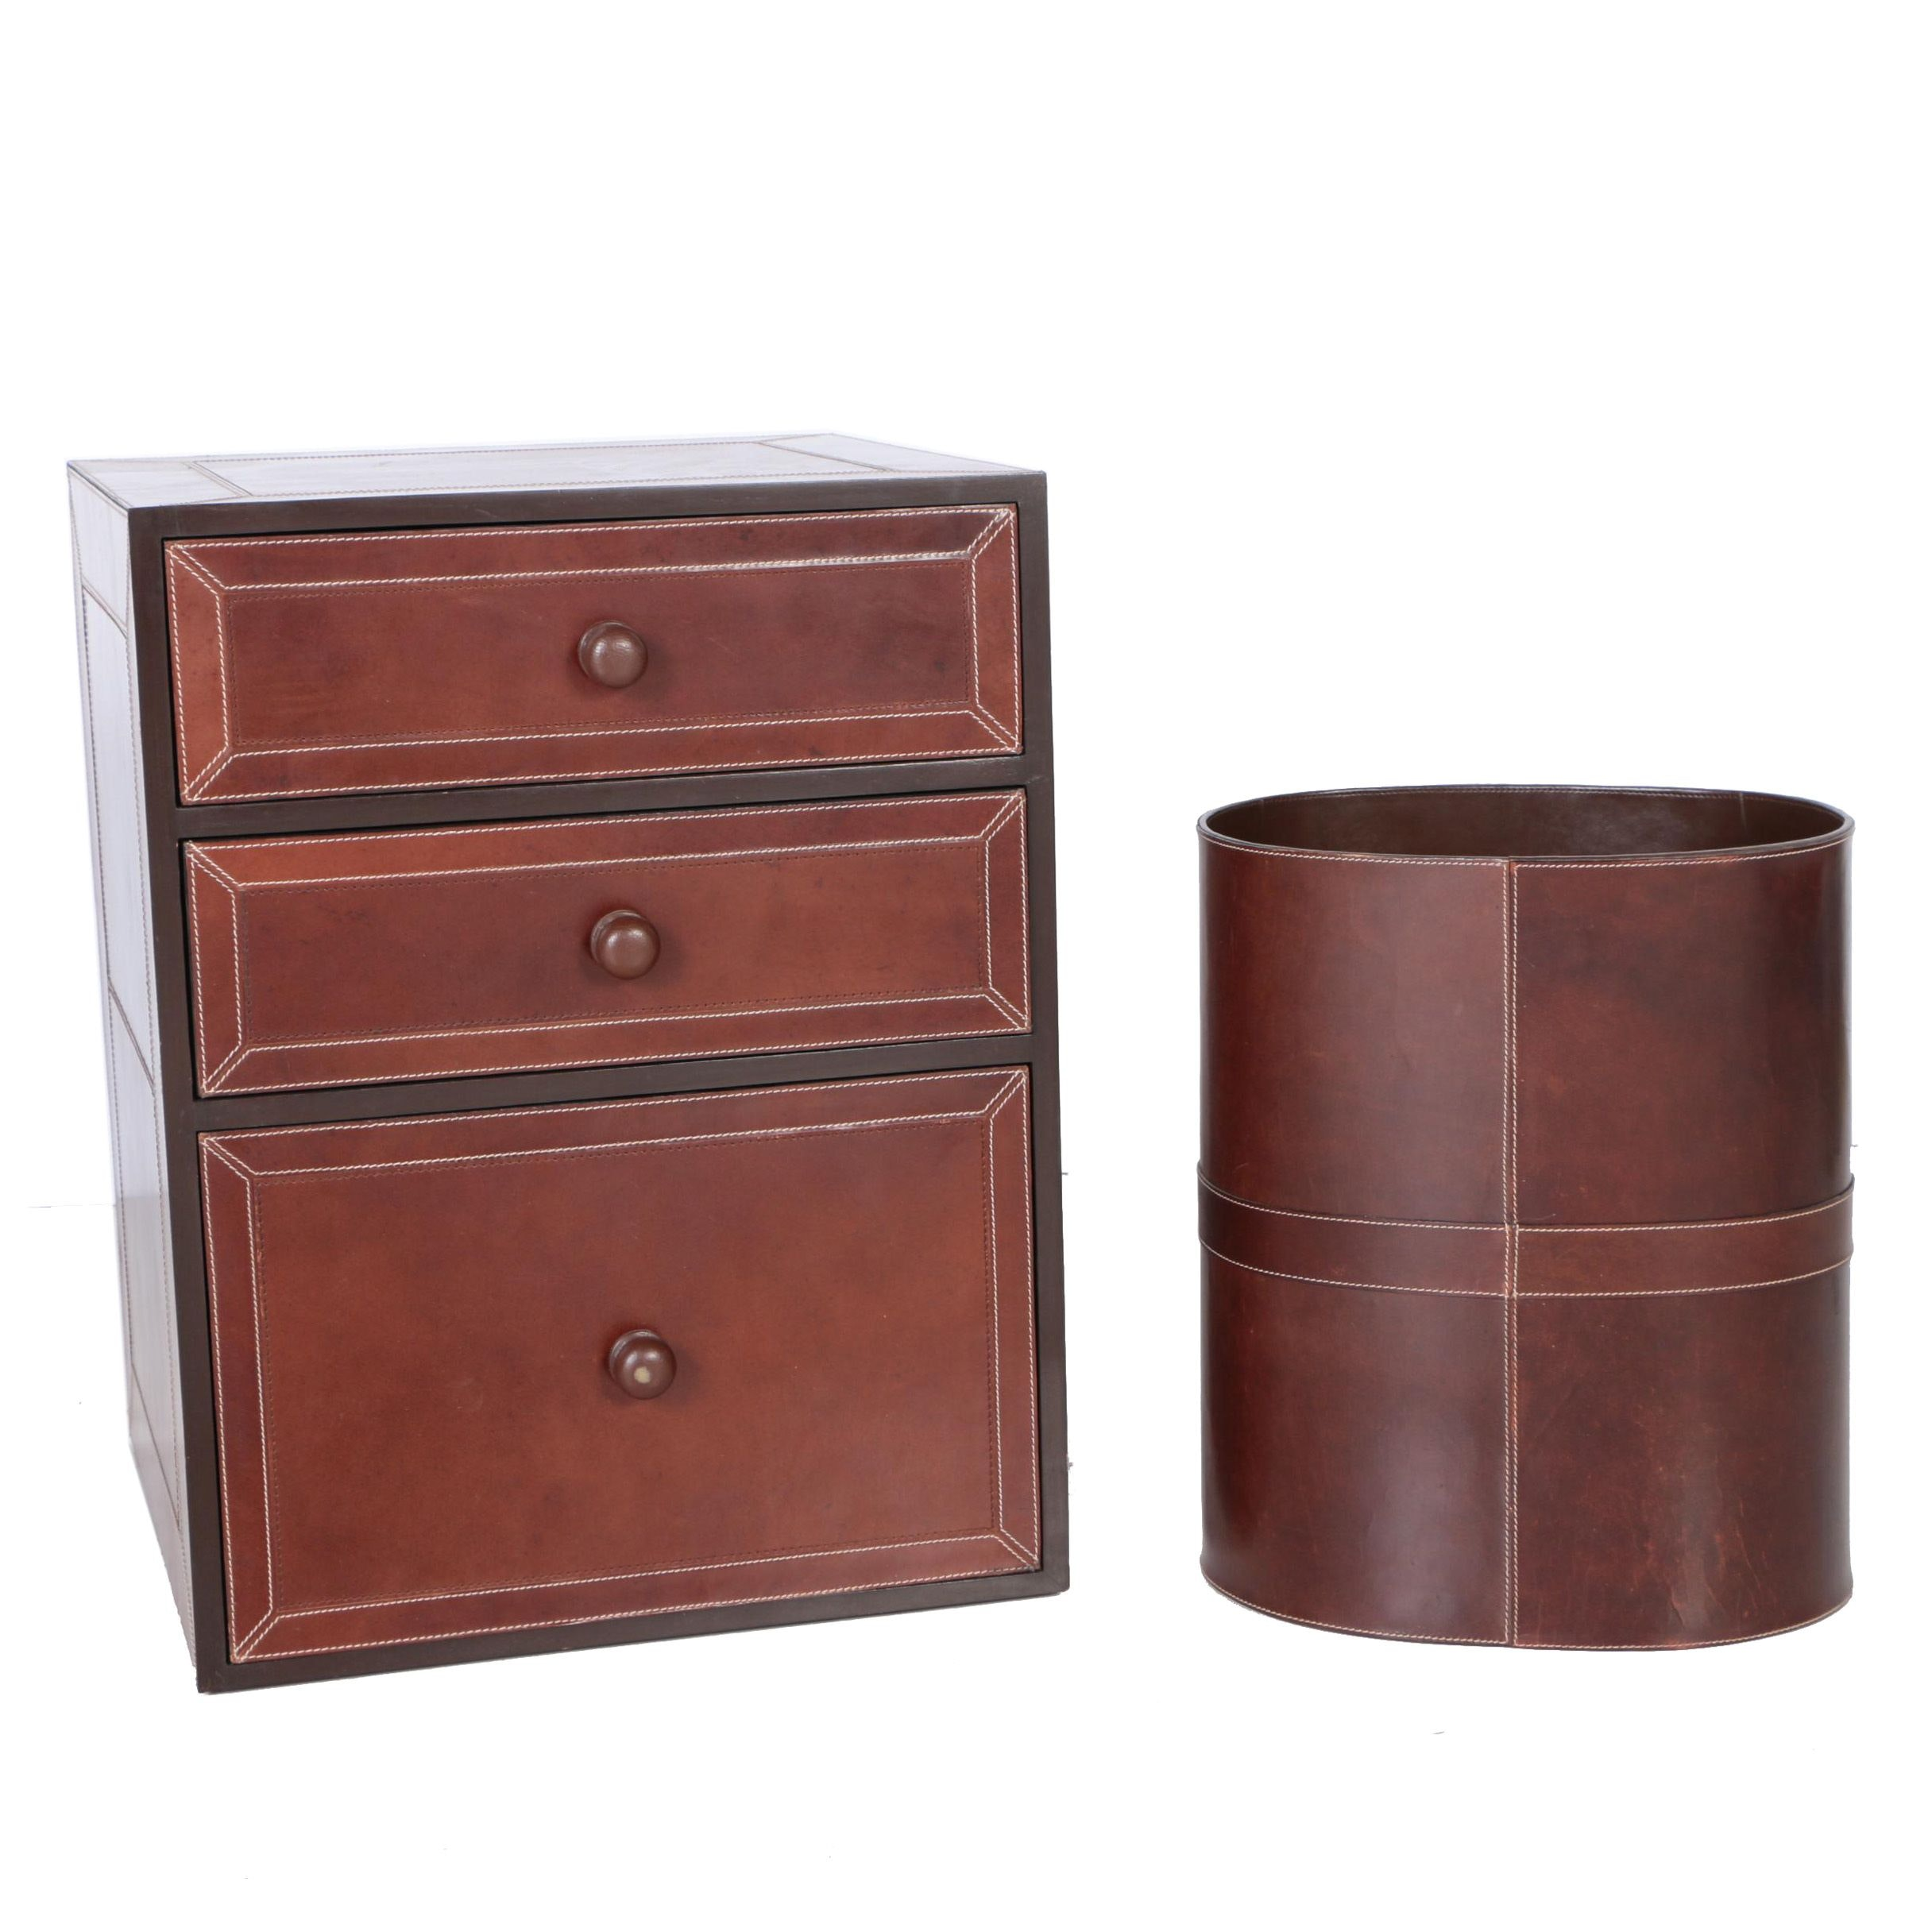 Leather Upholstered Cabinet And Wastebasket By Stetson ...